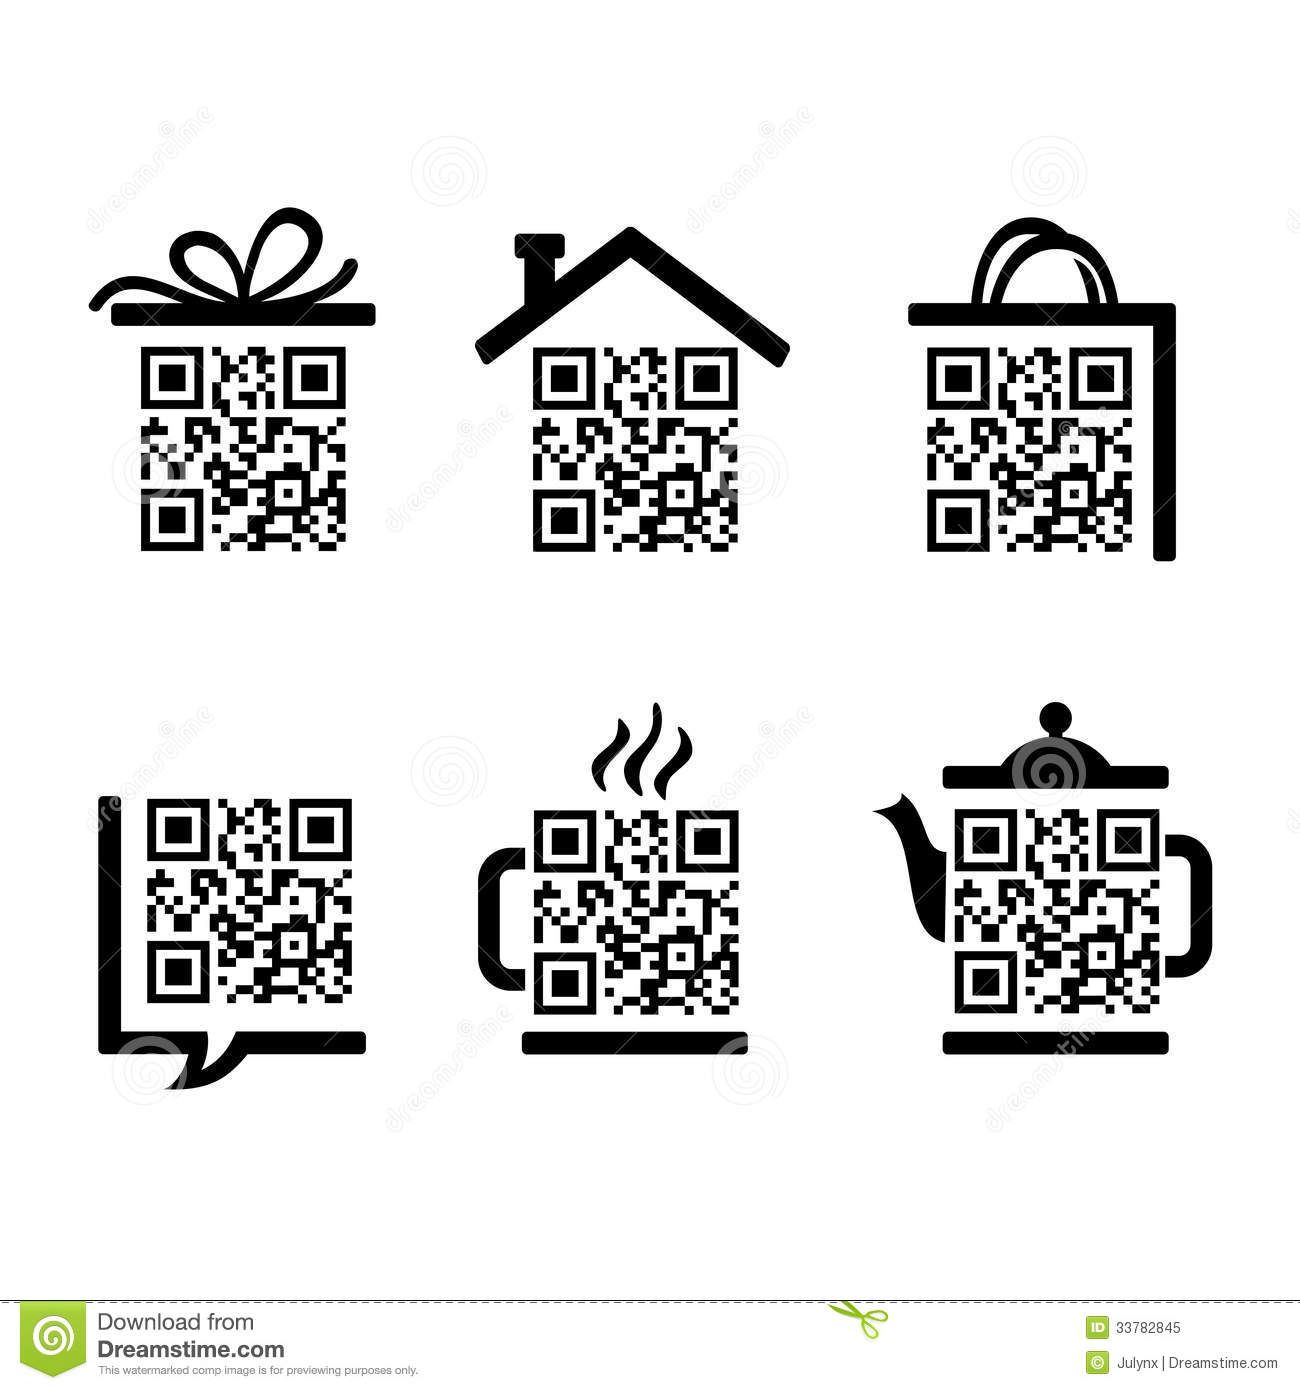 Qr Code Set Pictograms Royalty Free Stock Photo